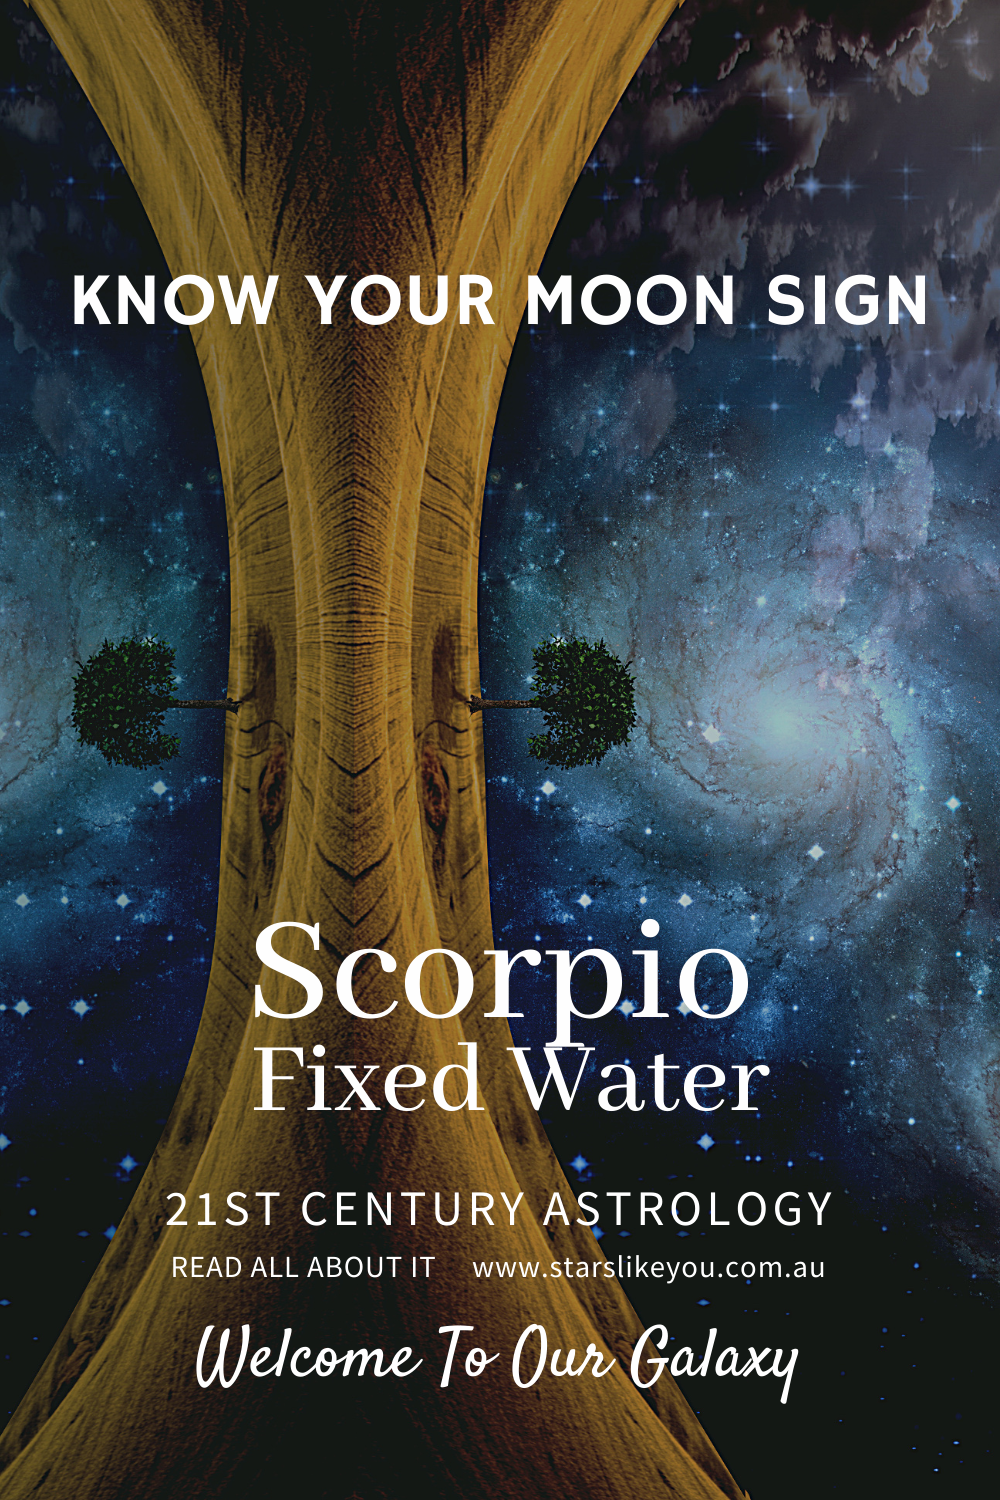 The meaning of scorpio moon